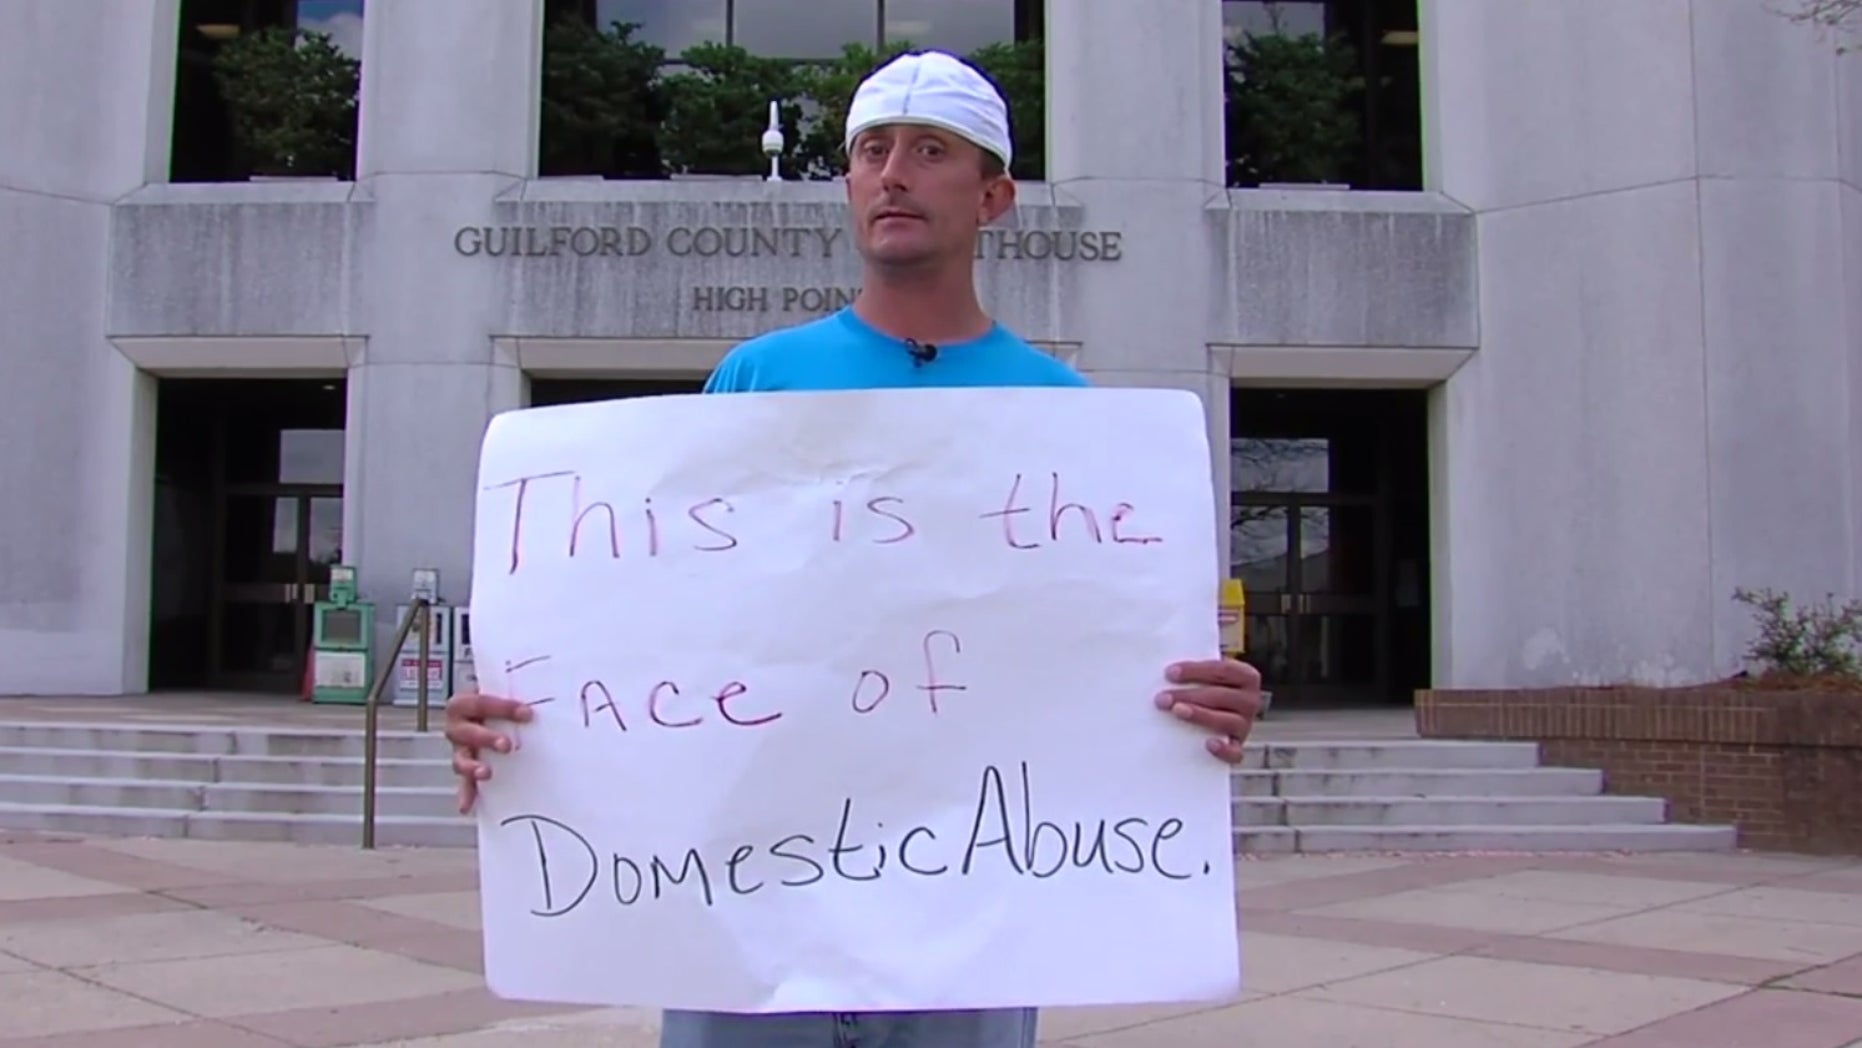 Josh Hill standing outside the courthouse.